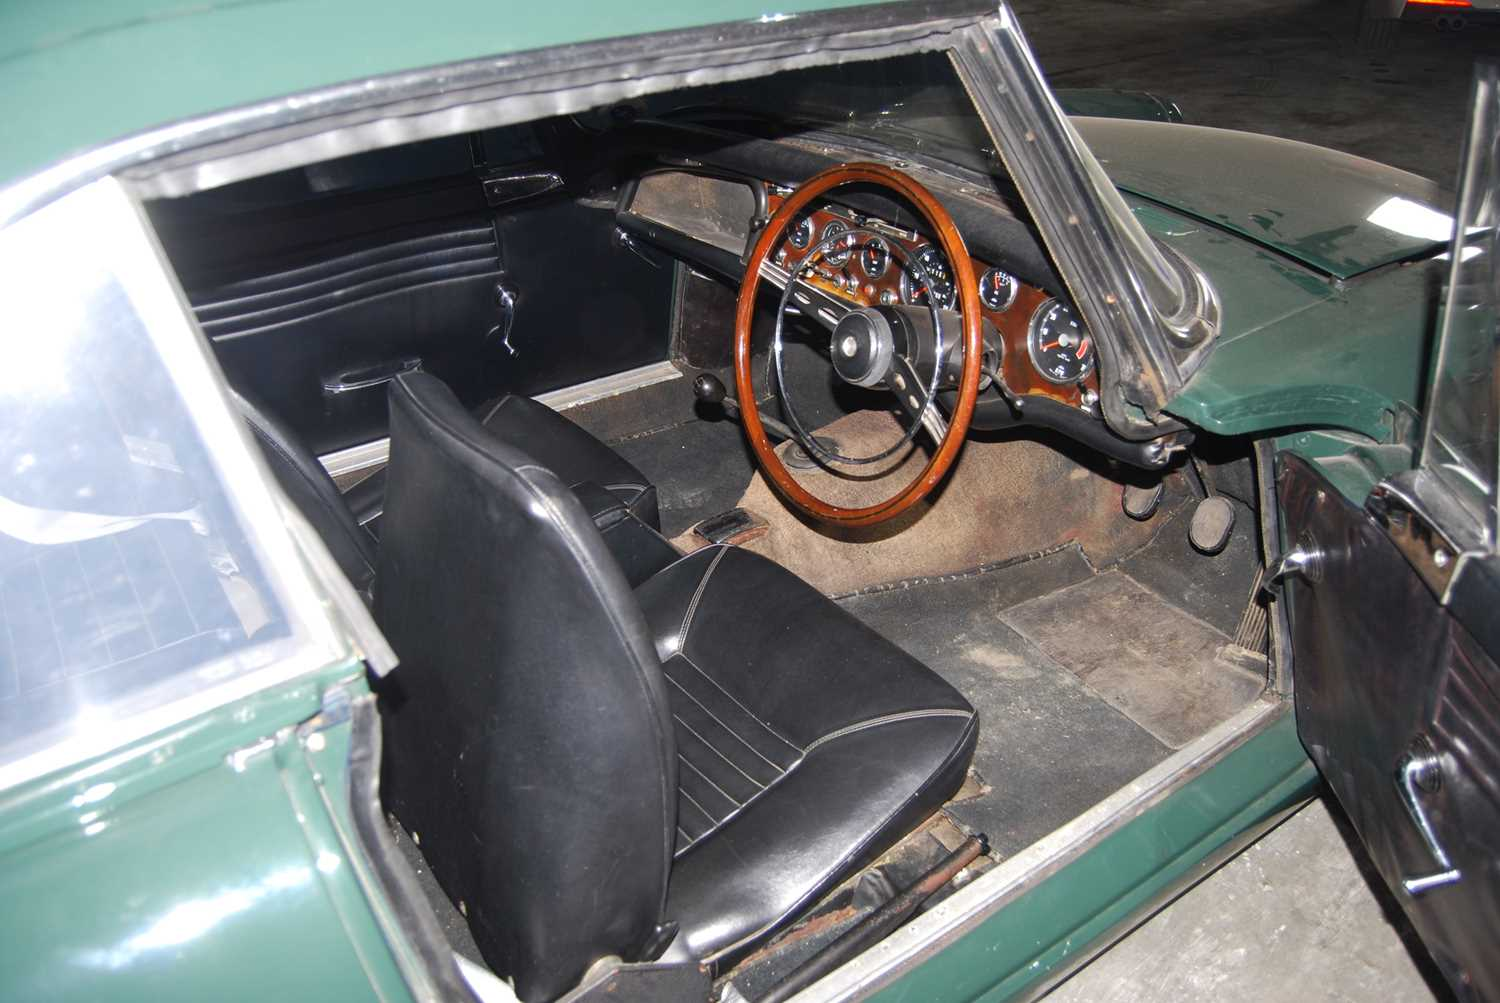 A 1968 Sunbeam Alpine Series V GT Reg No. NLY978F Chassis No. B395016307GTOD Green with Black - Image 13 of 43